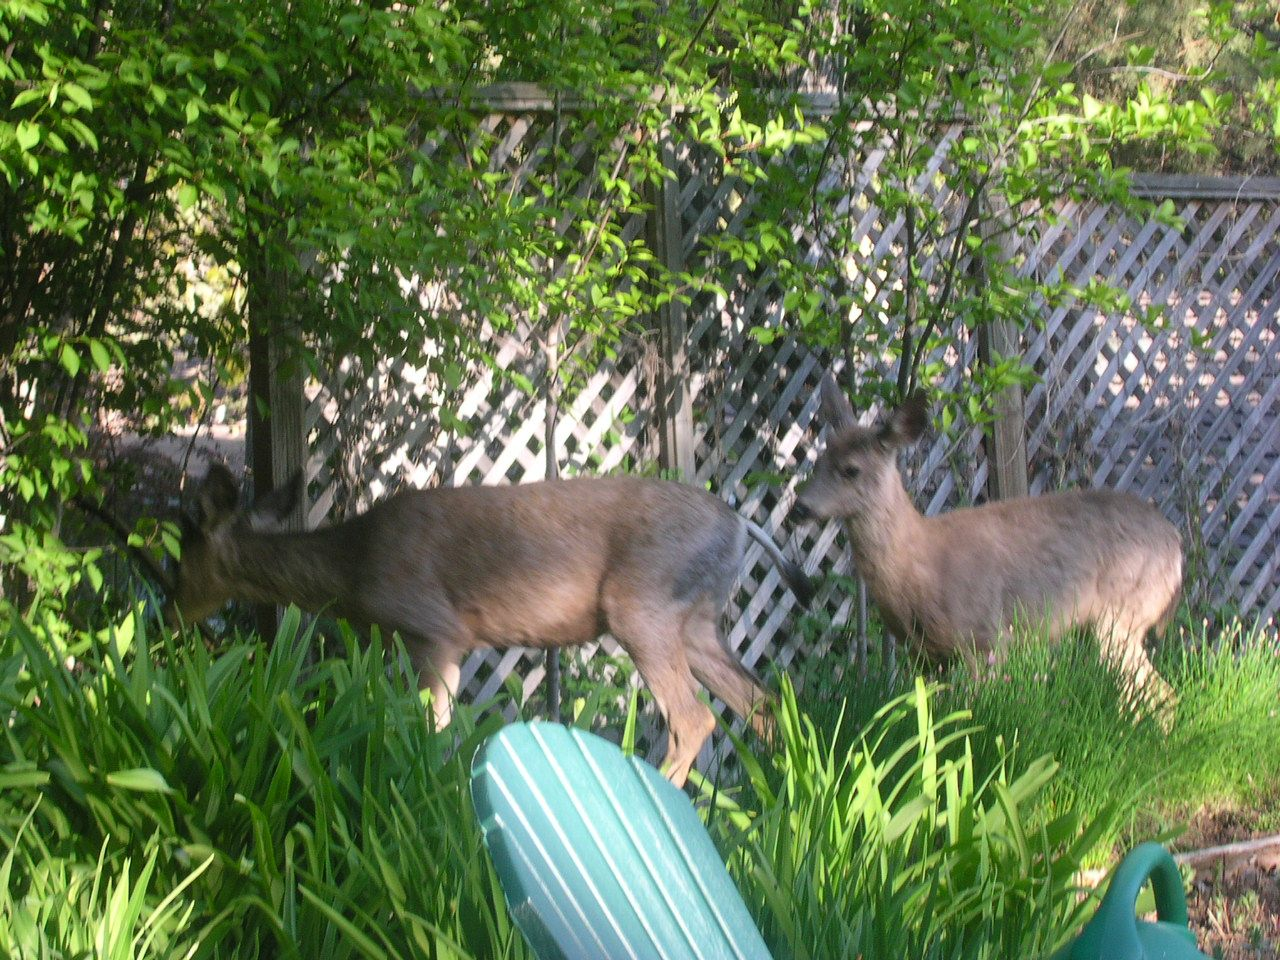 Time for the neighborhood deer to munch all your plants away!